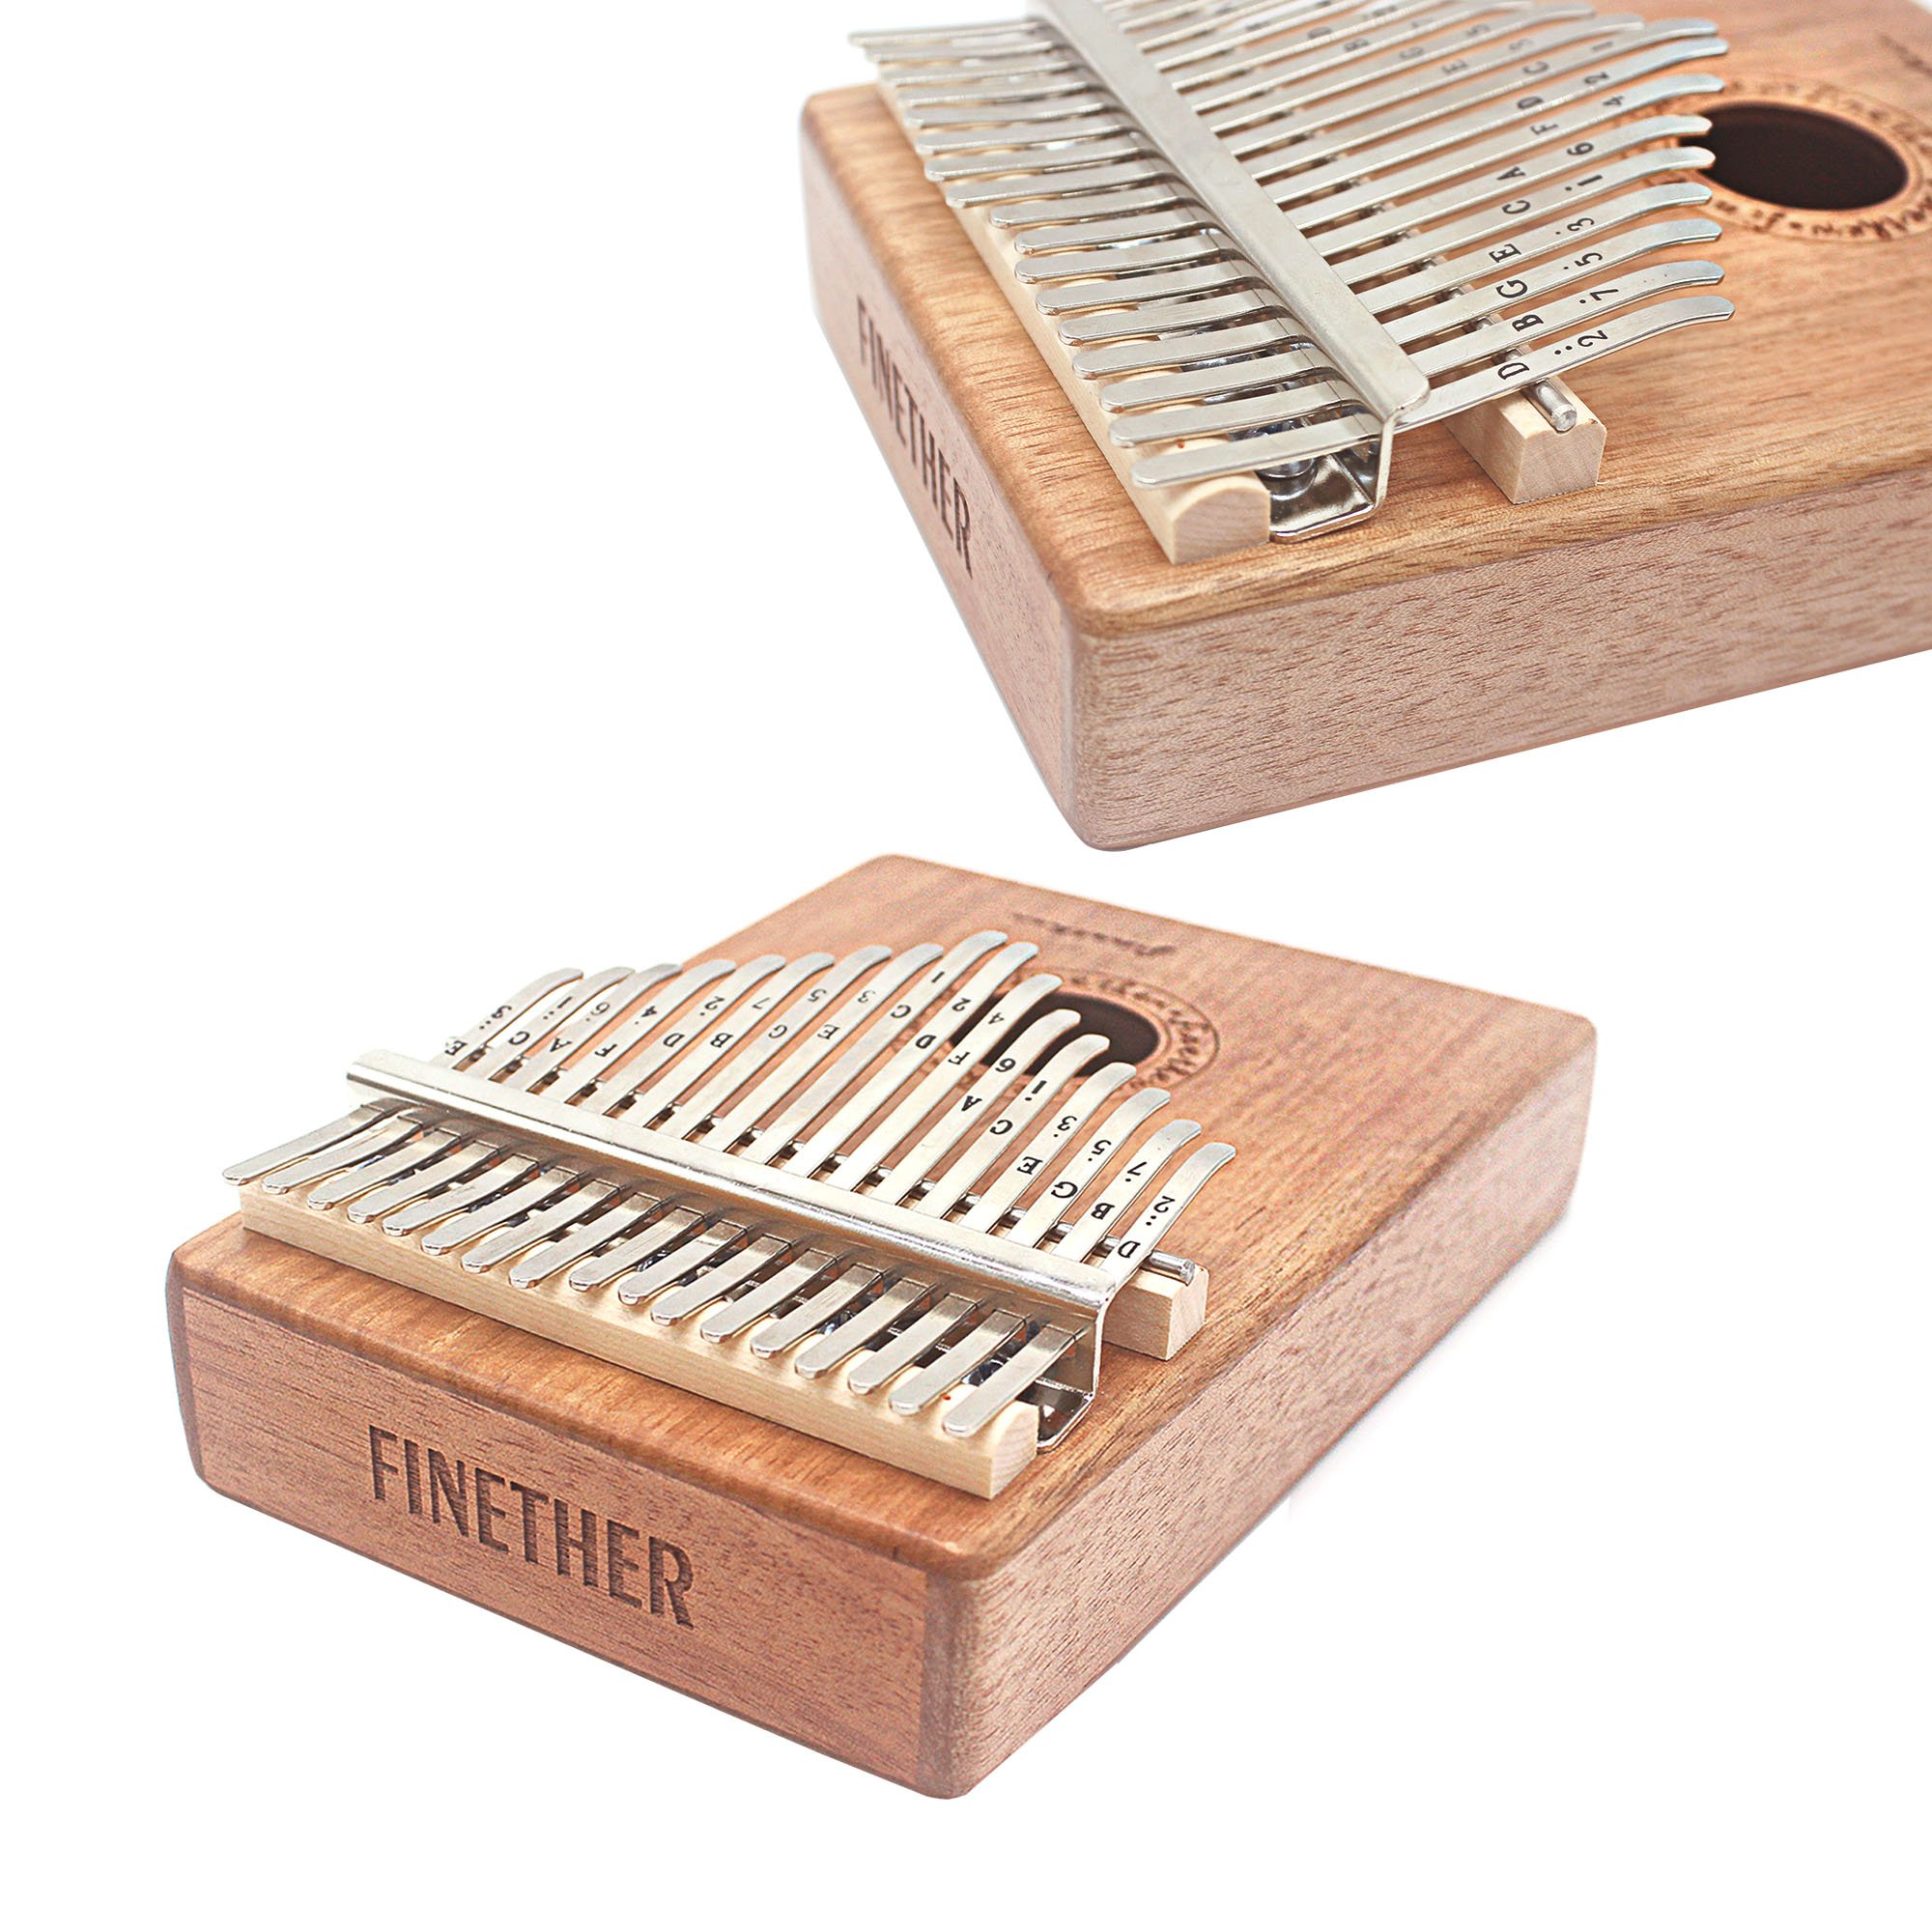 17 Keys Mahogany Kalimba Thumb Piano Wood Mbira Sanza Finger Percussion Pocket Keyboard w/Calibrating Tune Hammer for Beginners and Children (Mahogany) by AHongem (Image #6)